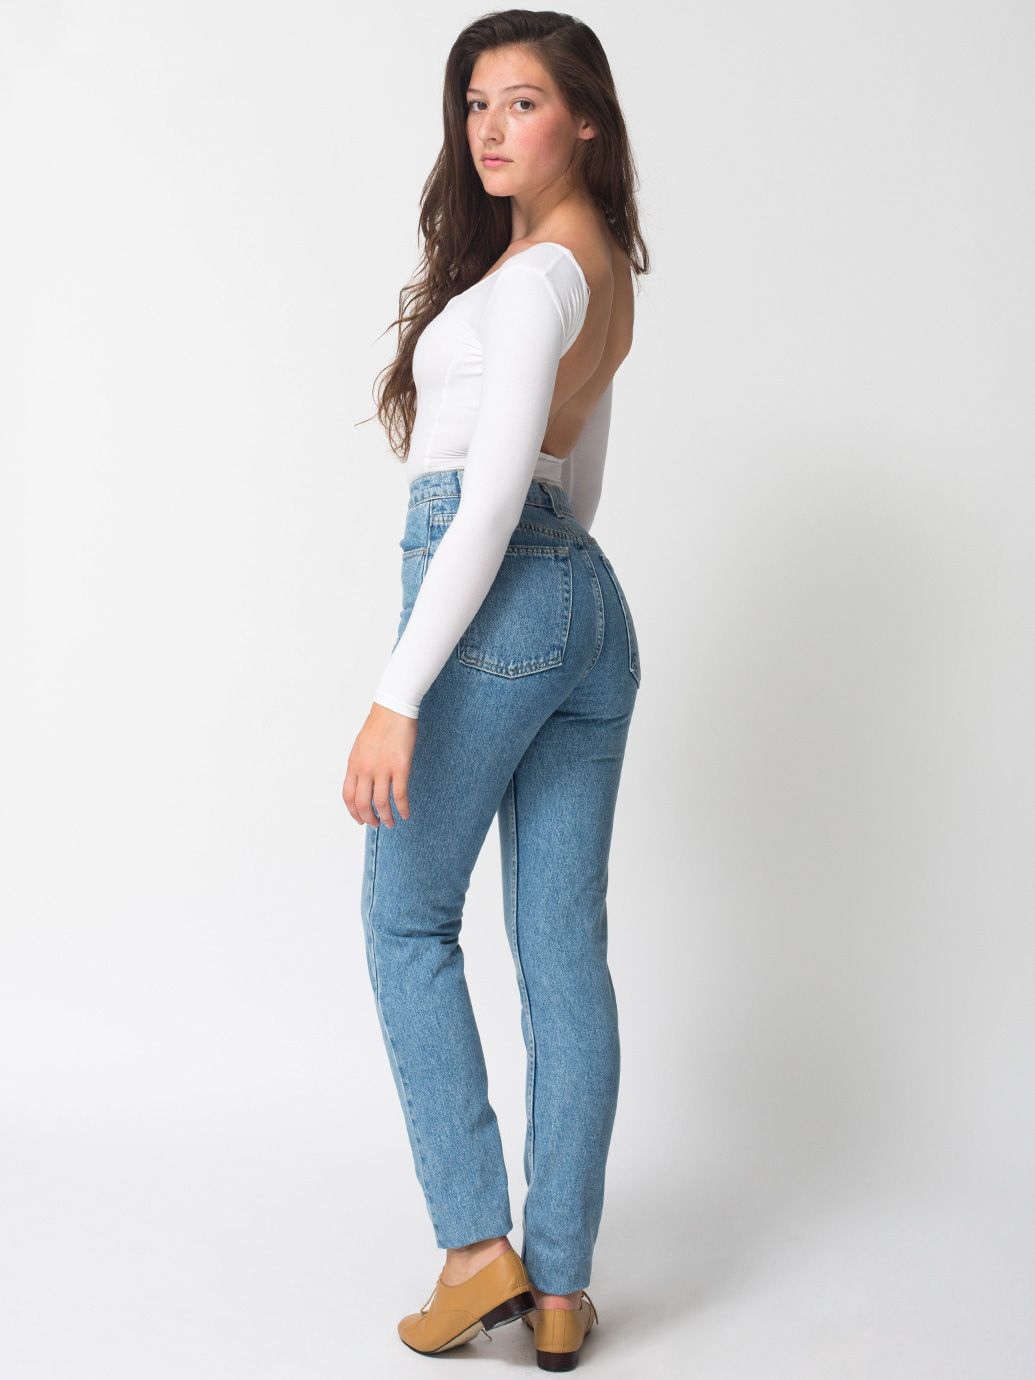 f88a5e28c41 American Apparel - Medium Wash High-Waist Jean...LOVE the high waist..so  tired of pants that go down almost to your whoohah!